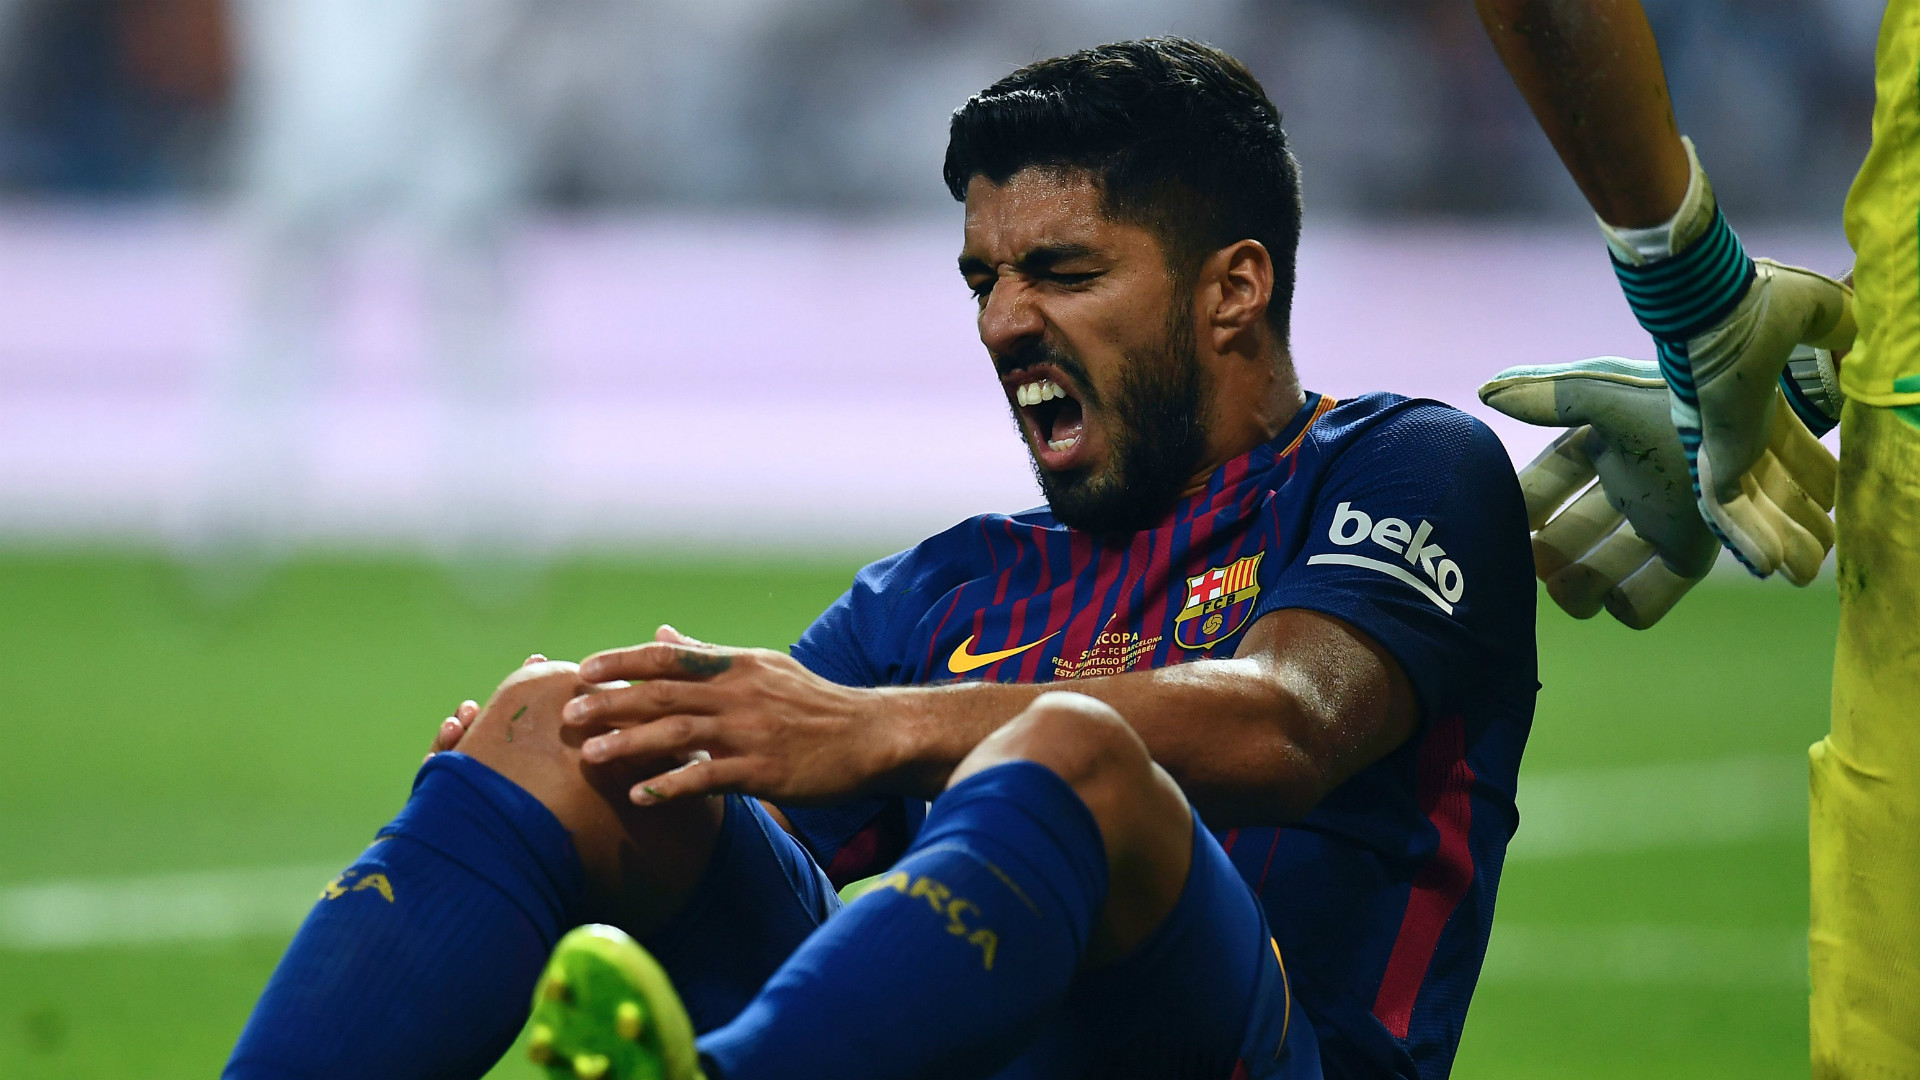 Barcelona's Luis Saurez ruled out for a month